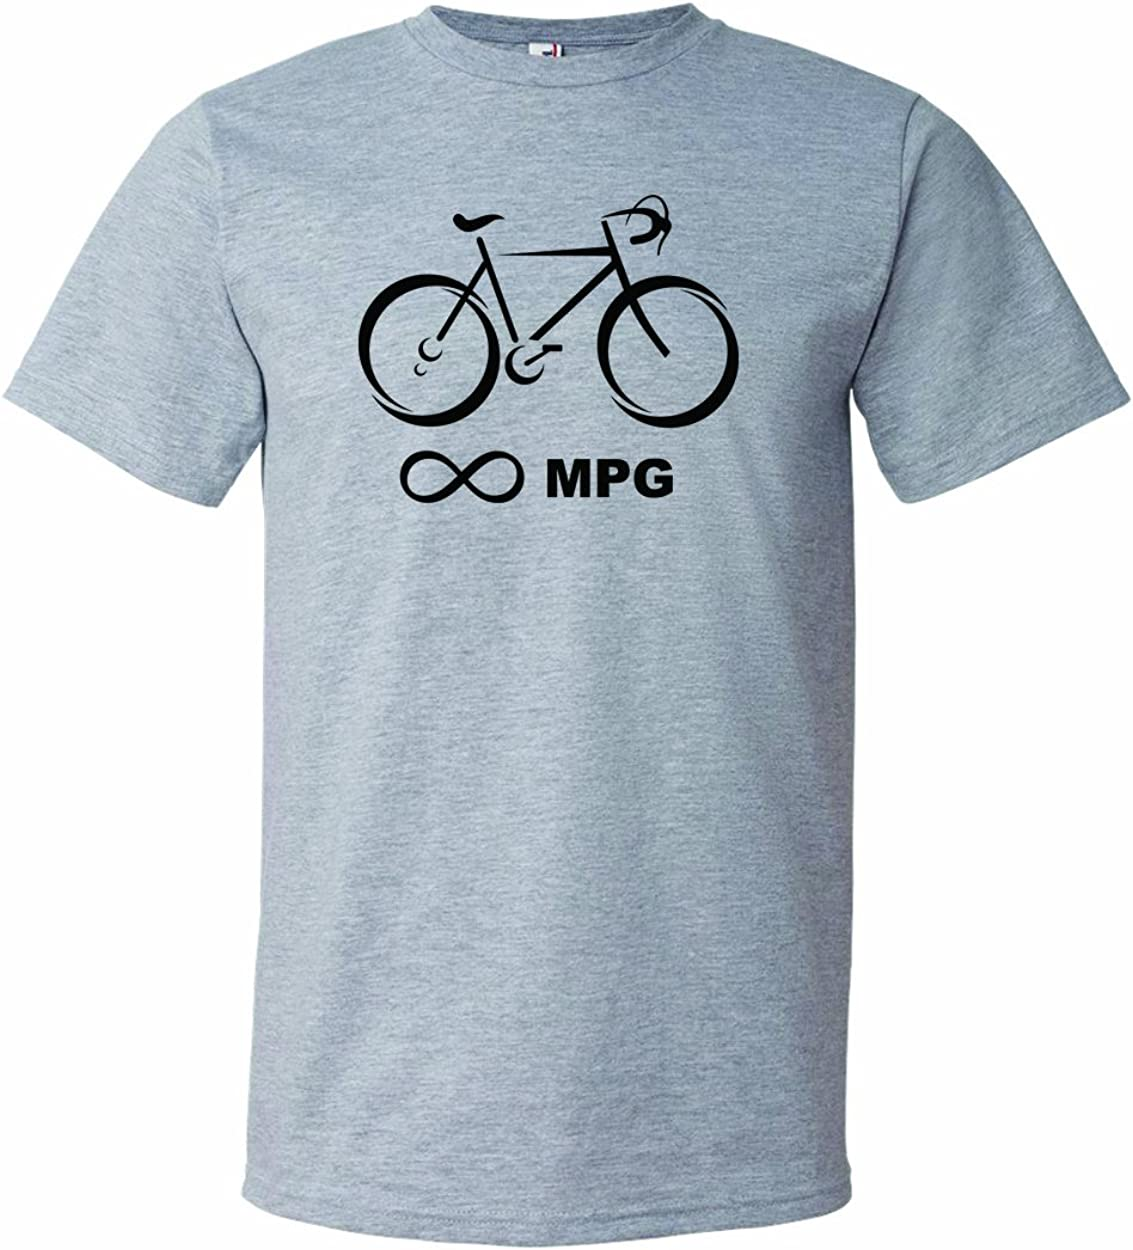 Men's Bicycle Infinity Miles Per Gallon MPG Unlimited Bike Cyclist T-Shirt